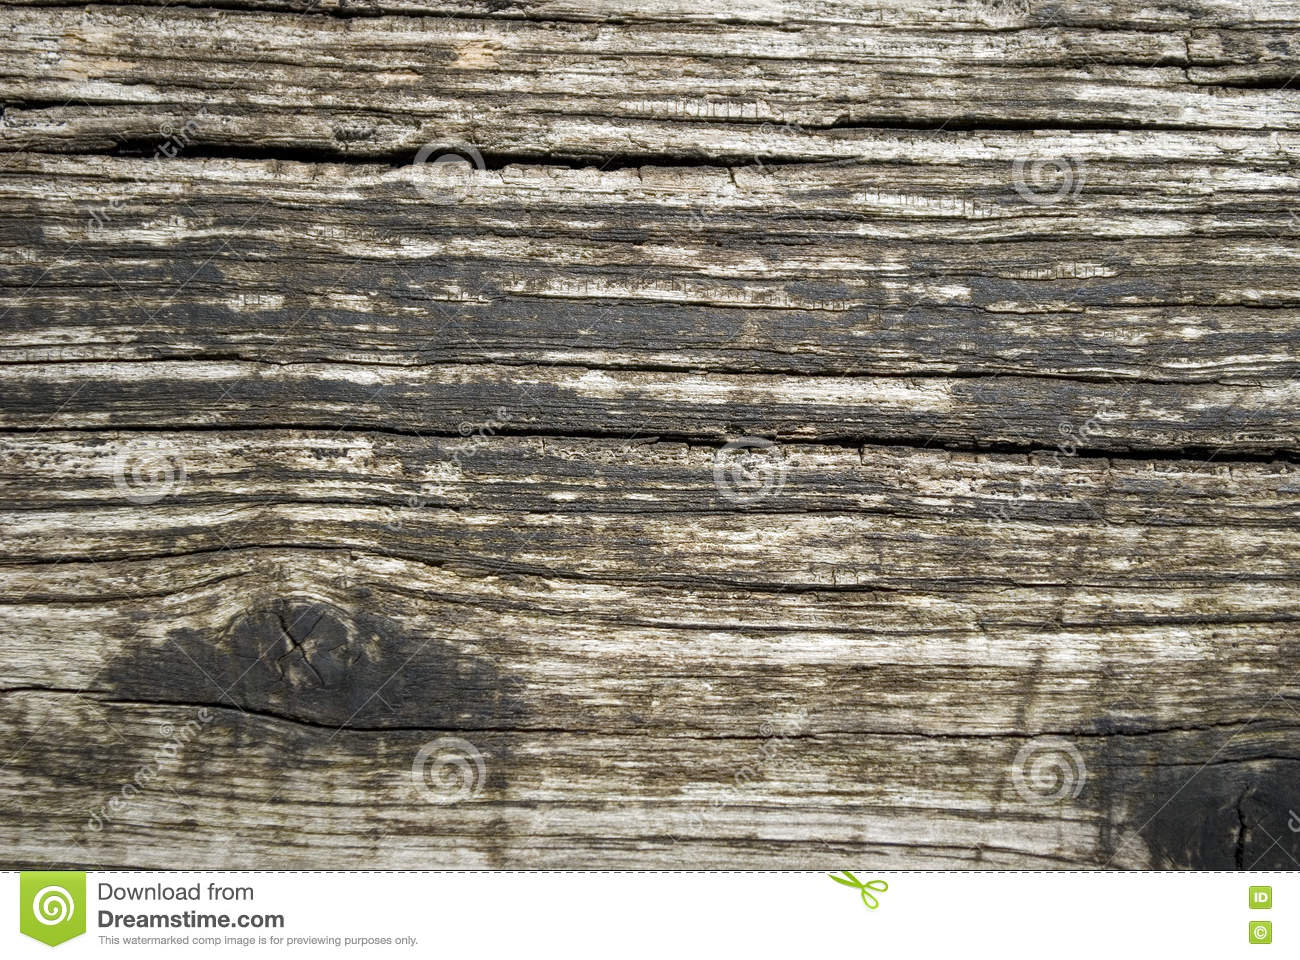 Empty wooden deck table texture